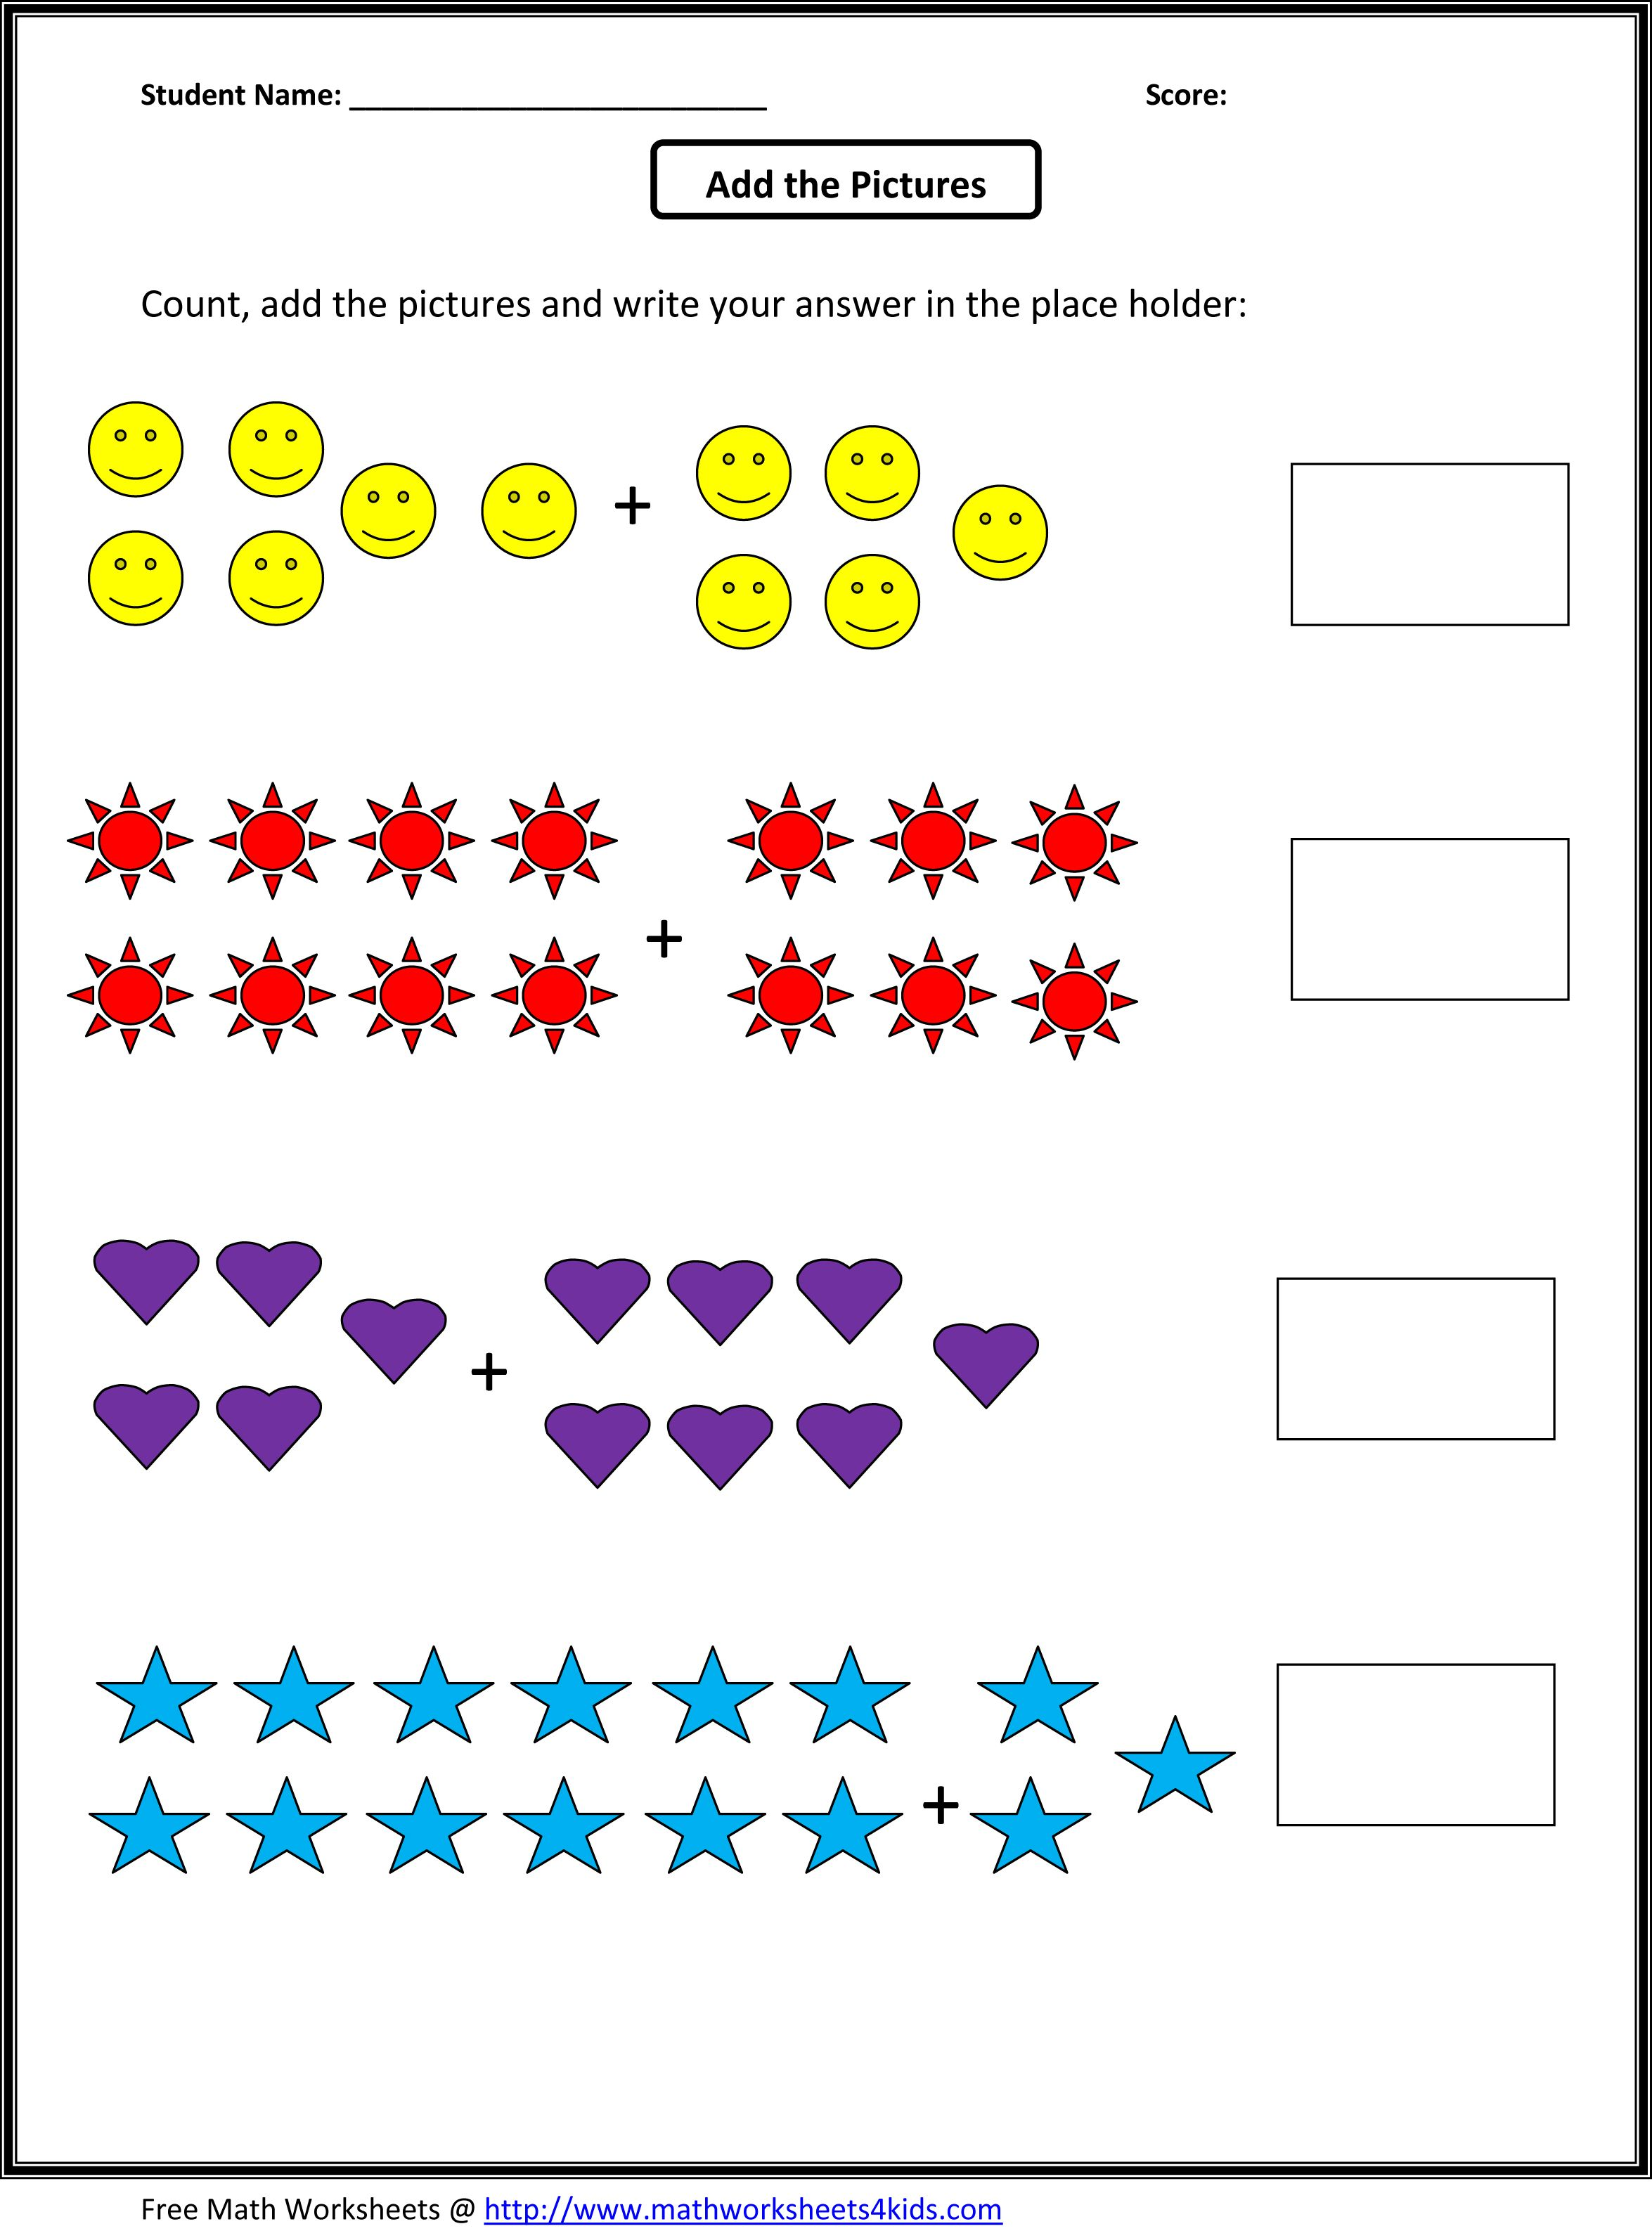 Uncategorized Math For 1st Graders Worksheets grade 1 addition math worksheets first worksheets